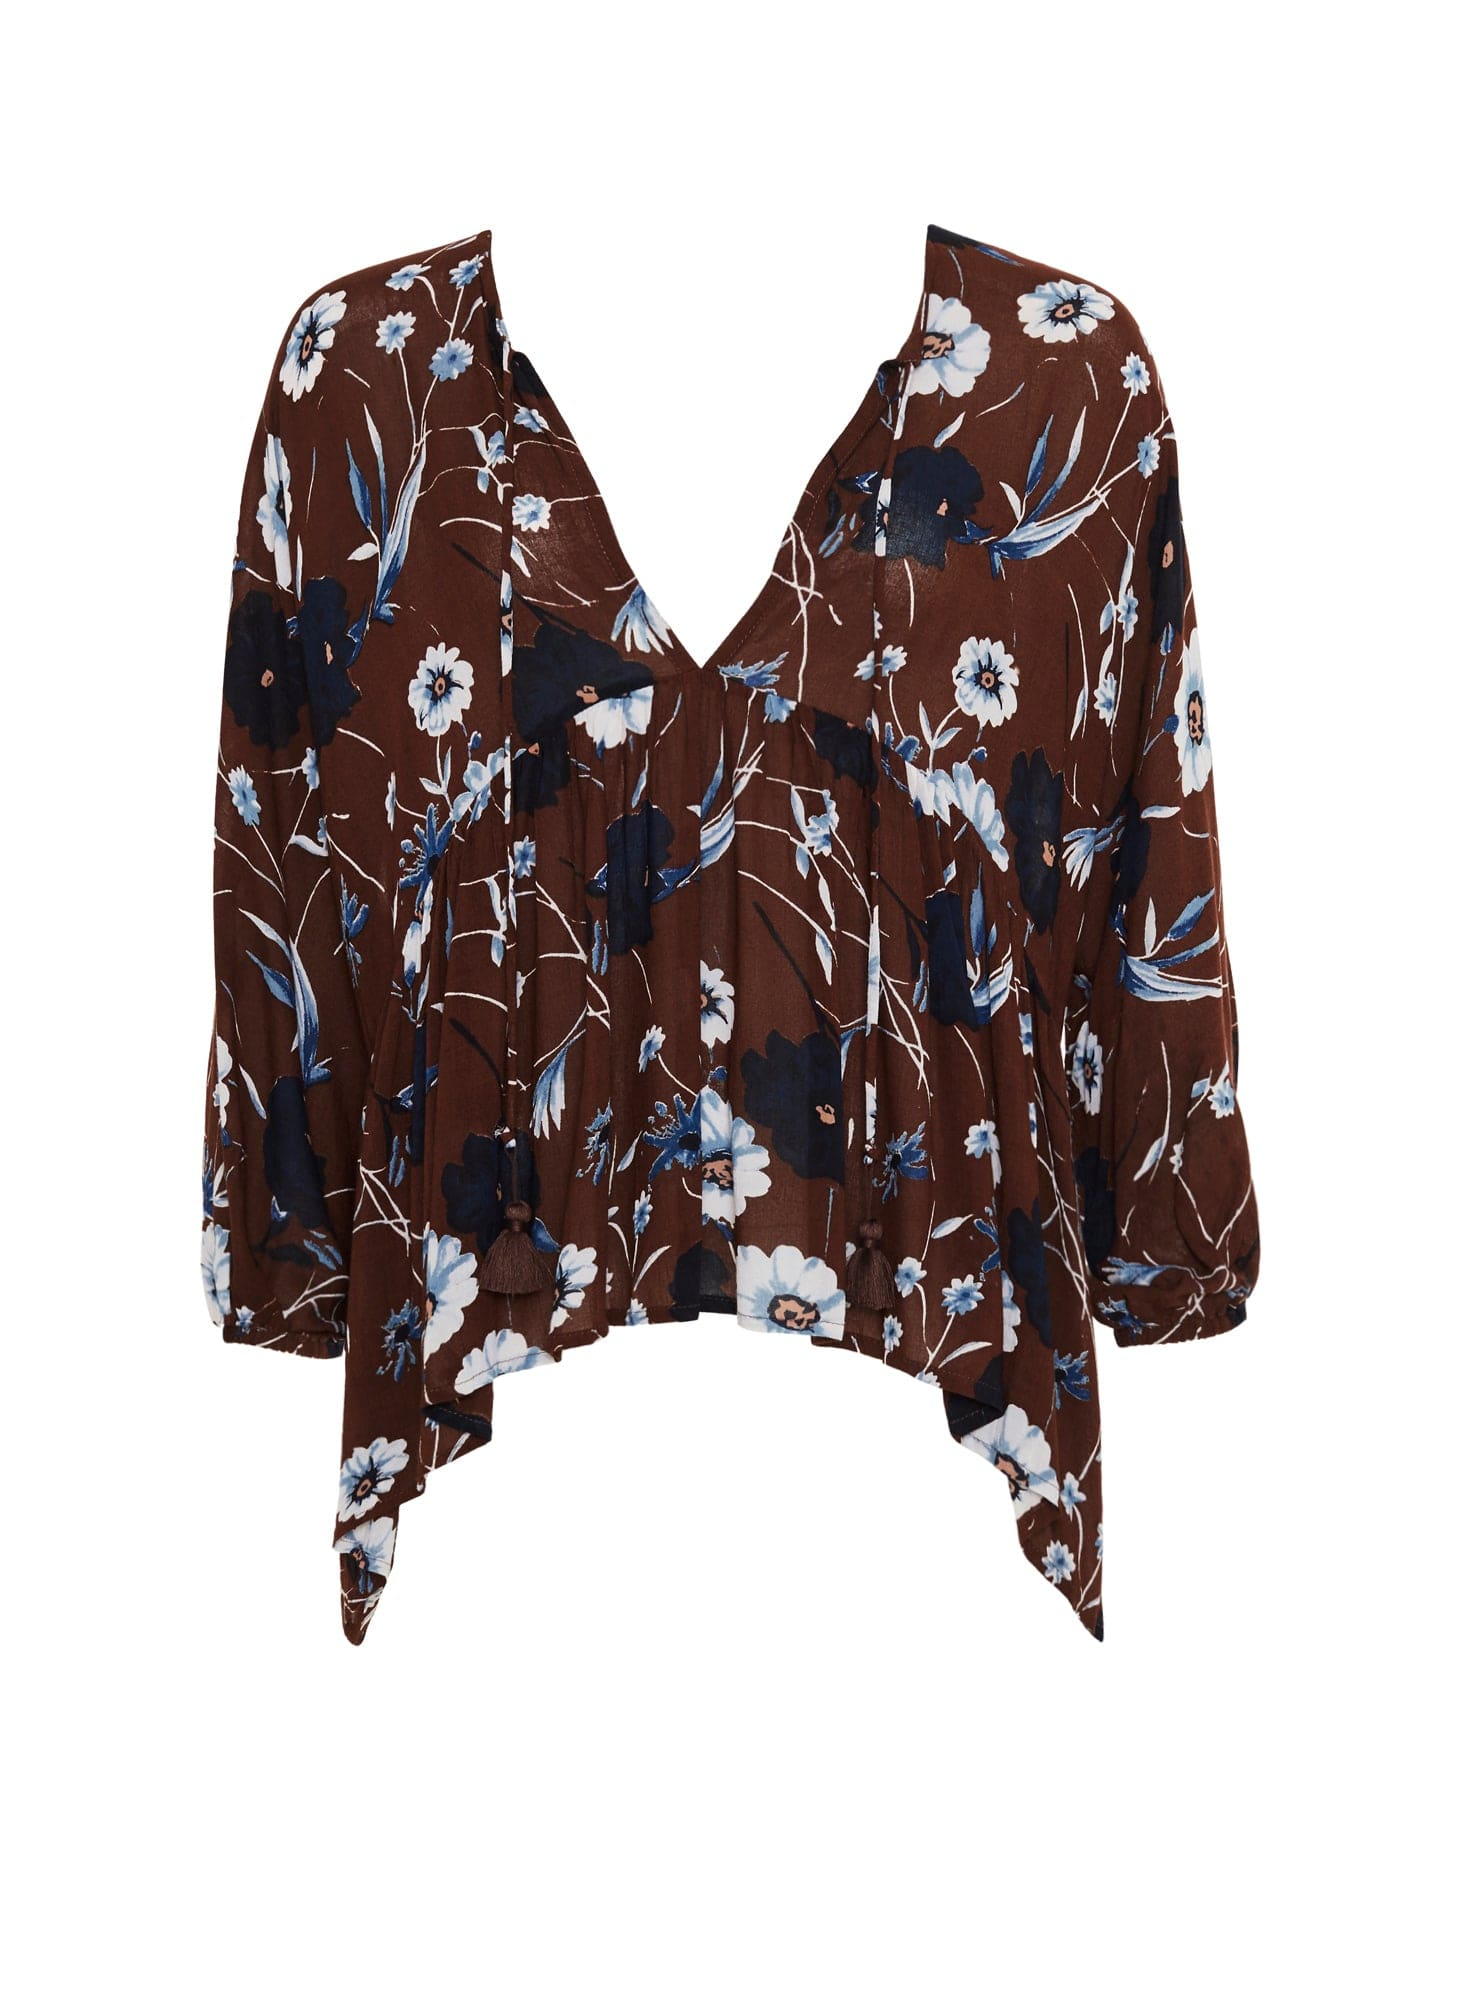 ABERDEEN FLORAL PRINT - PALM BEACH TOP - FINAL SALE